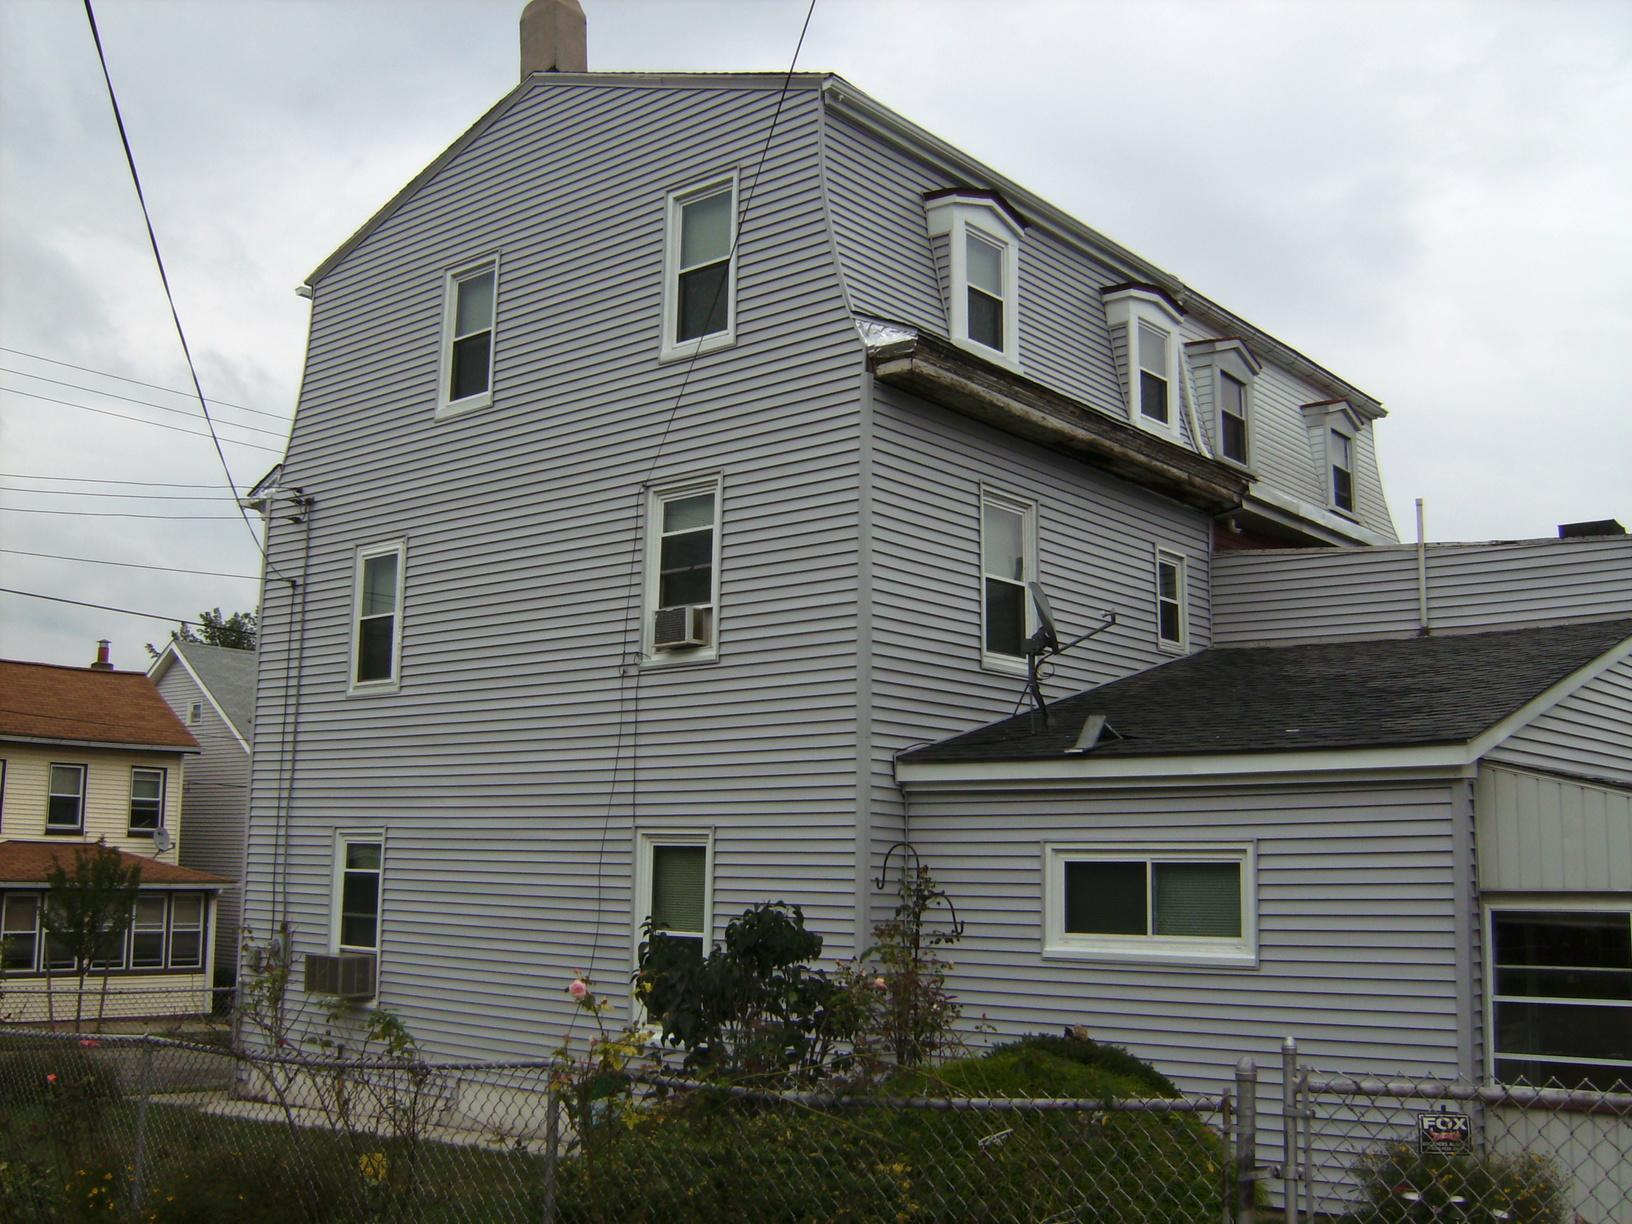 Hackettstown, NJ Home Siding Replacement - After Photo